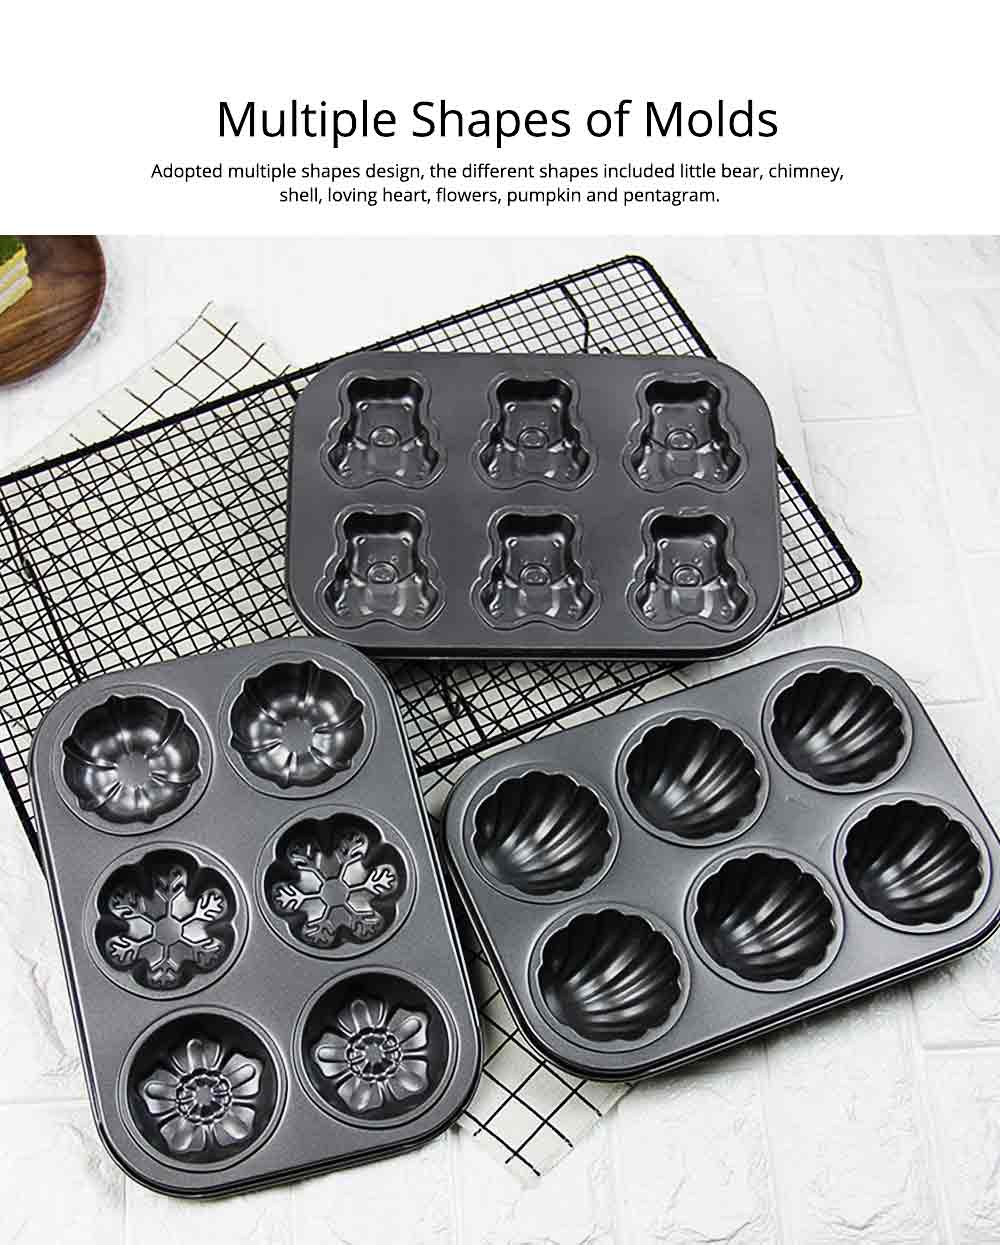 6 Cups Muffin Pan Bread Molds Cake Bakeware, Seashell Bear Shape DIY Chocolate Baking Mould 3